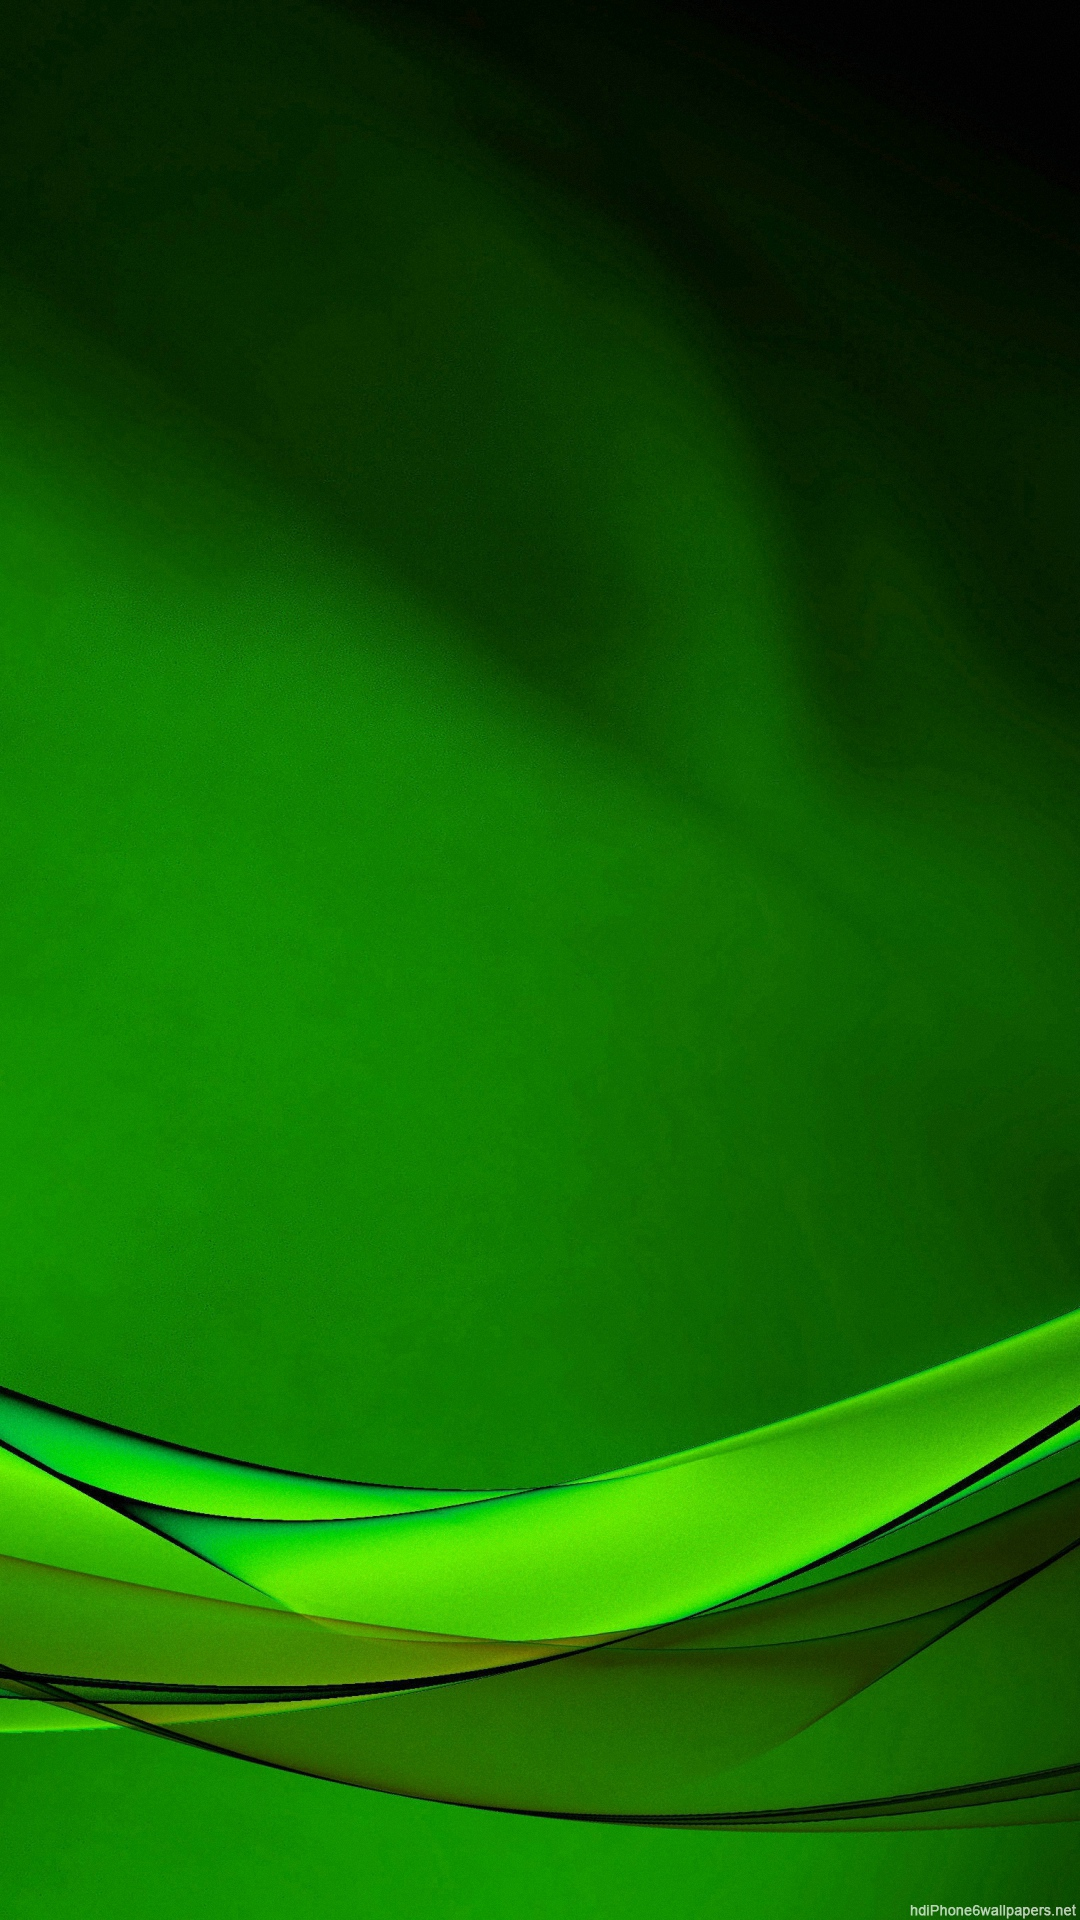 3d Holi Wallpapers Free Download Download Green Wallpaper Hd Iphone Gallery